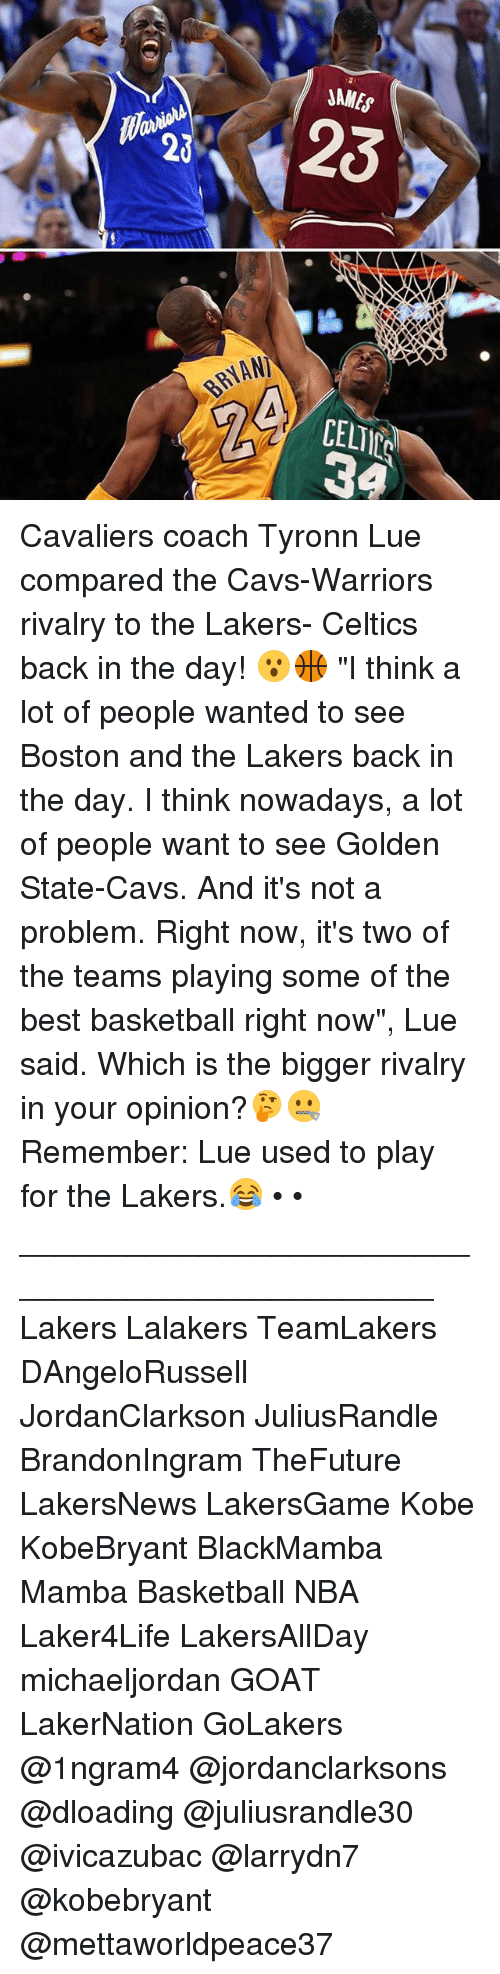 "Basketball, Cavs, and Los Angeles Lakers: BAYAN)  NAMES Cavaliers coach Tyronn Lue compared the Cavs-Warriors rivalry to the Lakers- Celtics back in the day! 😮🏀 ""I think a lot of people wanted to see Boston and the Lakers back in the day. I think nowadays, a lot of people want to see Golden State-Cavs. And it's not a problem. Right now, it's two of the teams playing some of the best basketball right now"", Lue said. Which is the bigger rivalry in your opinion?🤔🤐 Remember: Lue used to play for the Lakers.😂 • • ________________________________________________ Lakers Lalakers TeamLakers DAngeloRussell JordanClarkson JuliusRandle BrandonIngram TheFuture LakersNews LakersGame Kobe KobeBryant BlackMamba Mamba Basketball NBA Laker4Life LakersAllDay michaeljordan GOAT LakerNation GoLakers @1ngram4 @jordanclarksons @dloading @juliusrandle30 @ivicazubac @larrydn7 @kobebryant @mettaworldpeace37"